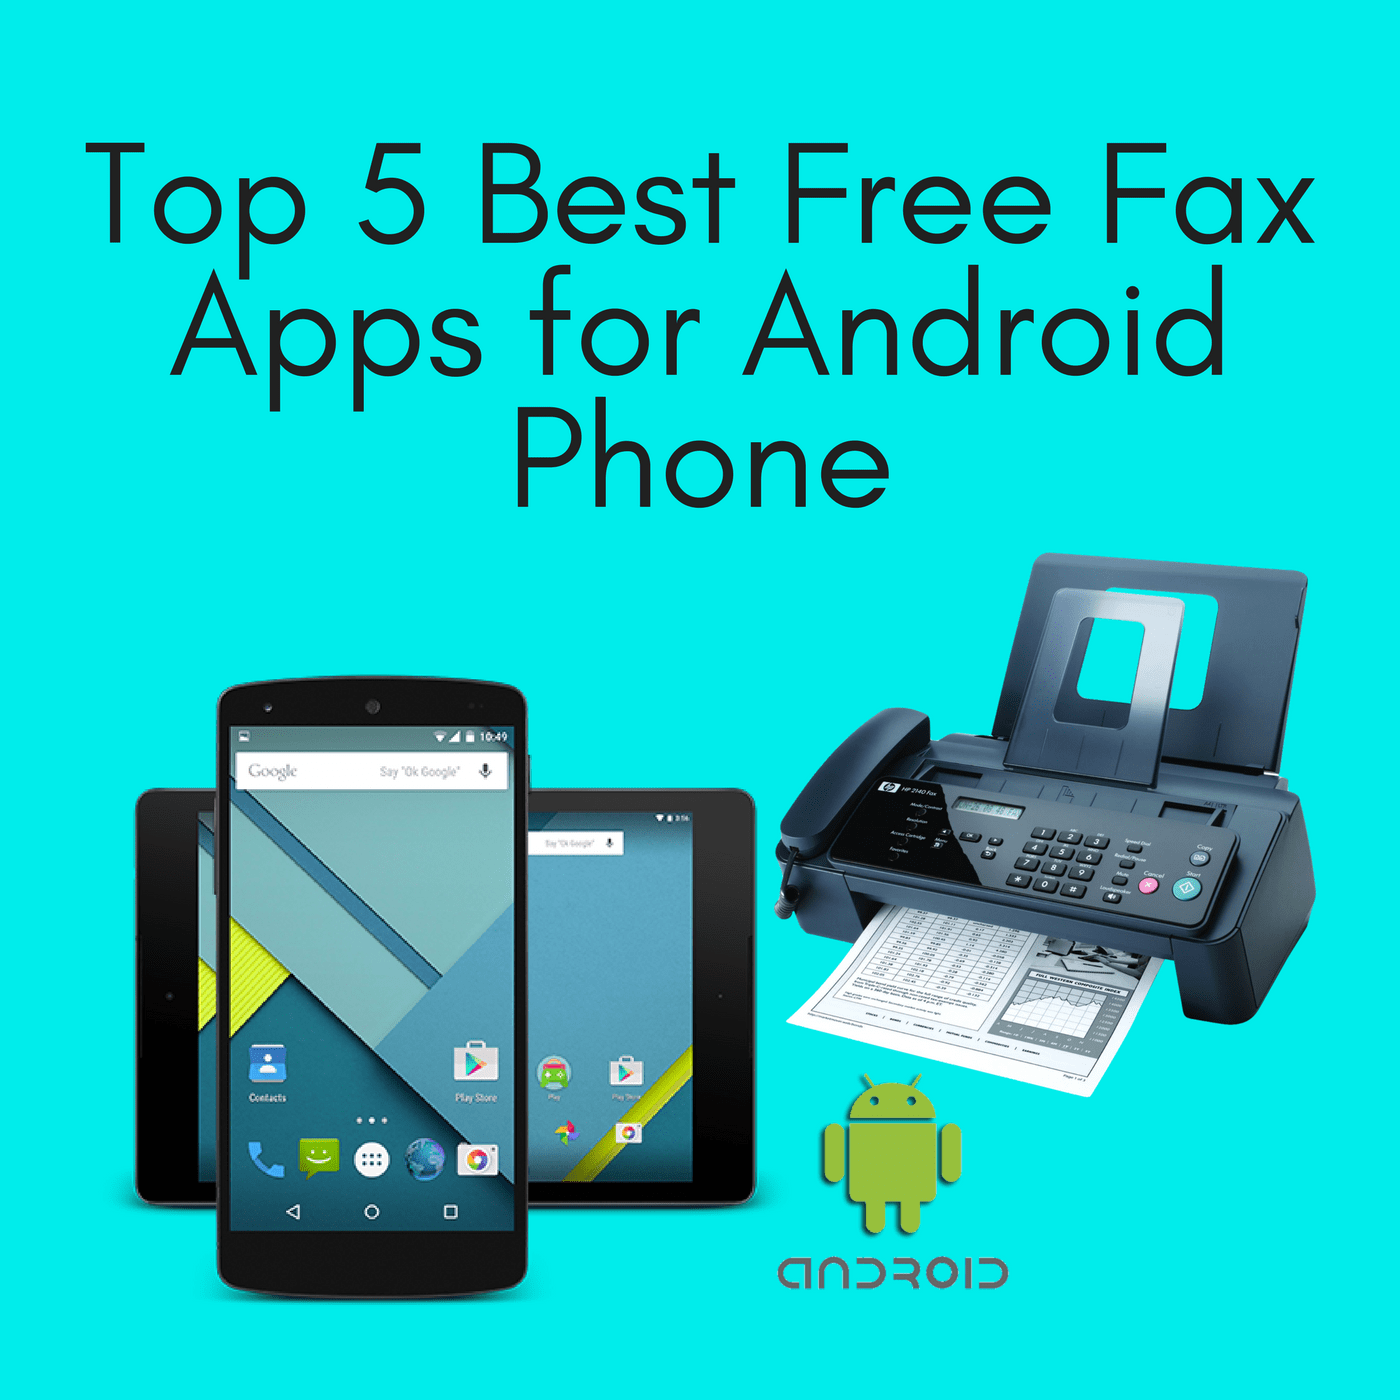 Top 5 Best Free Fax Apps For Iphone Ipad Google Fax Free